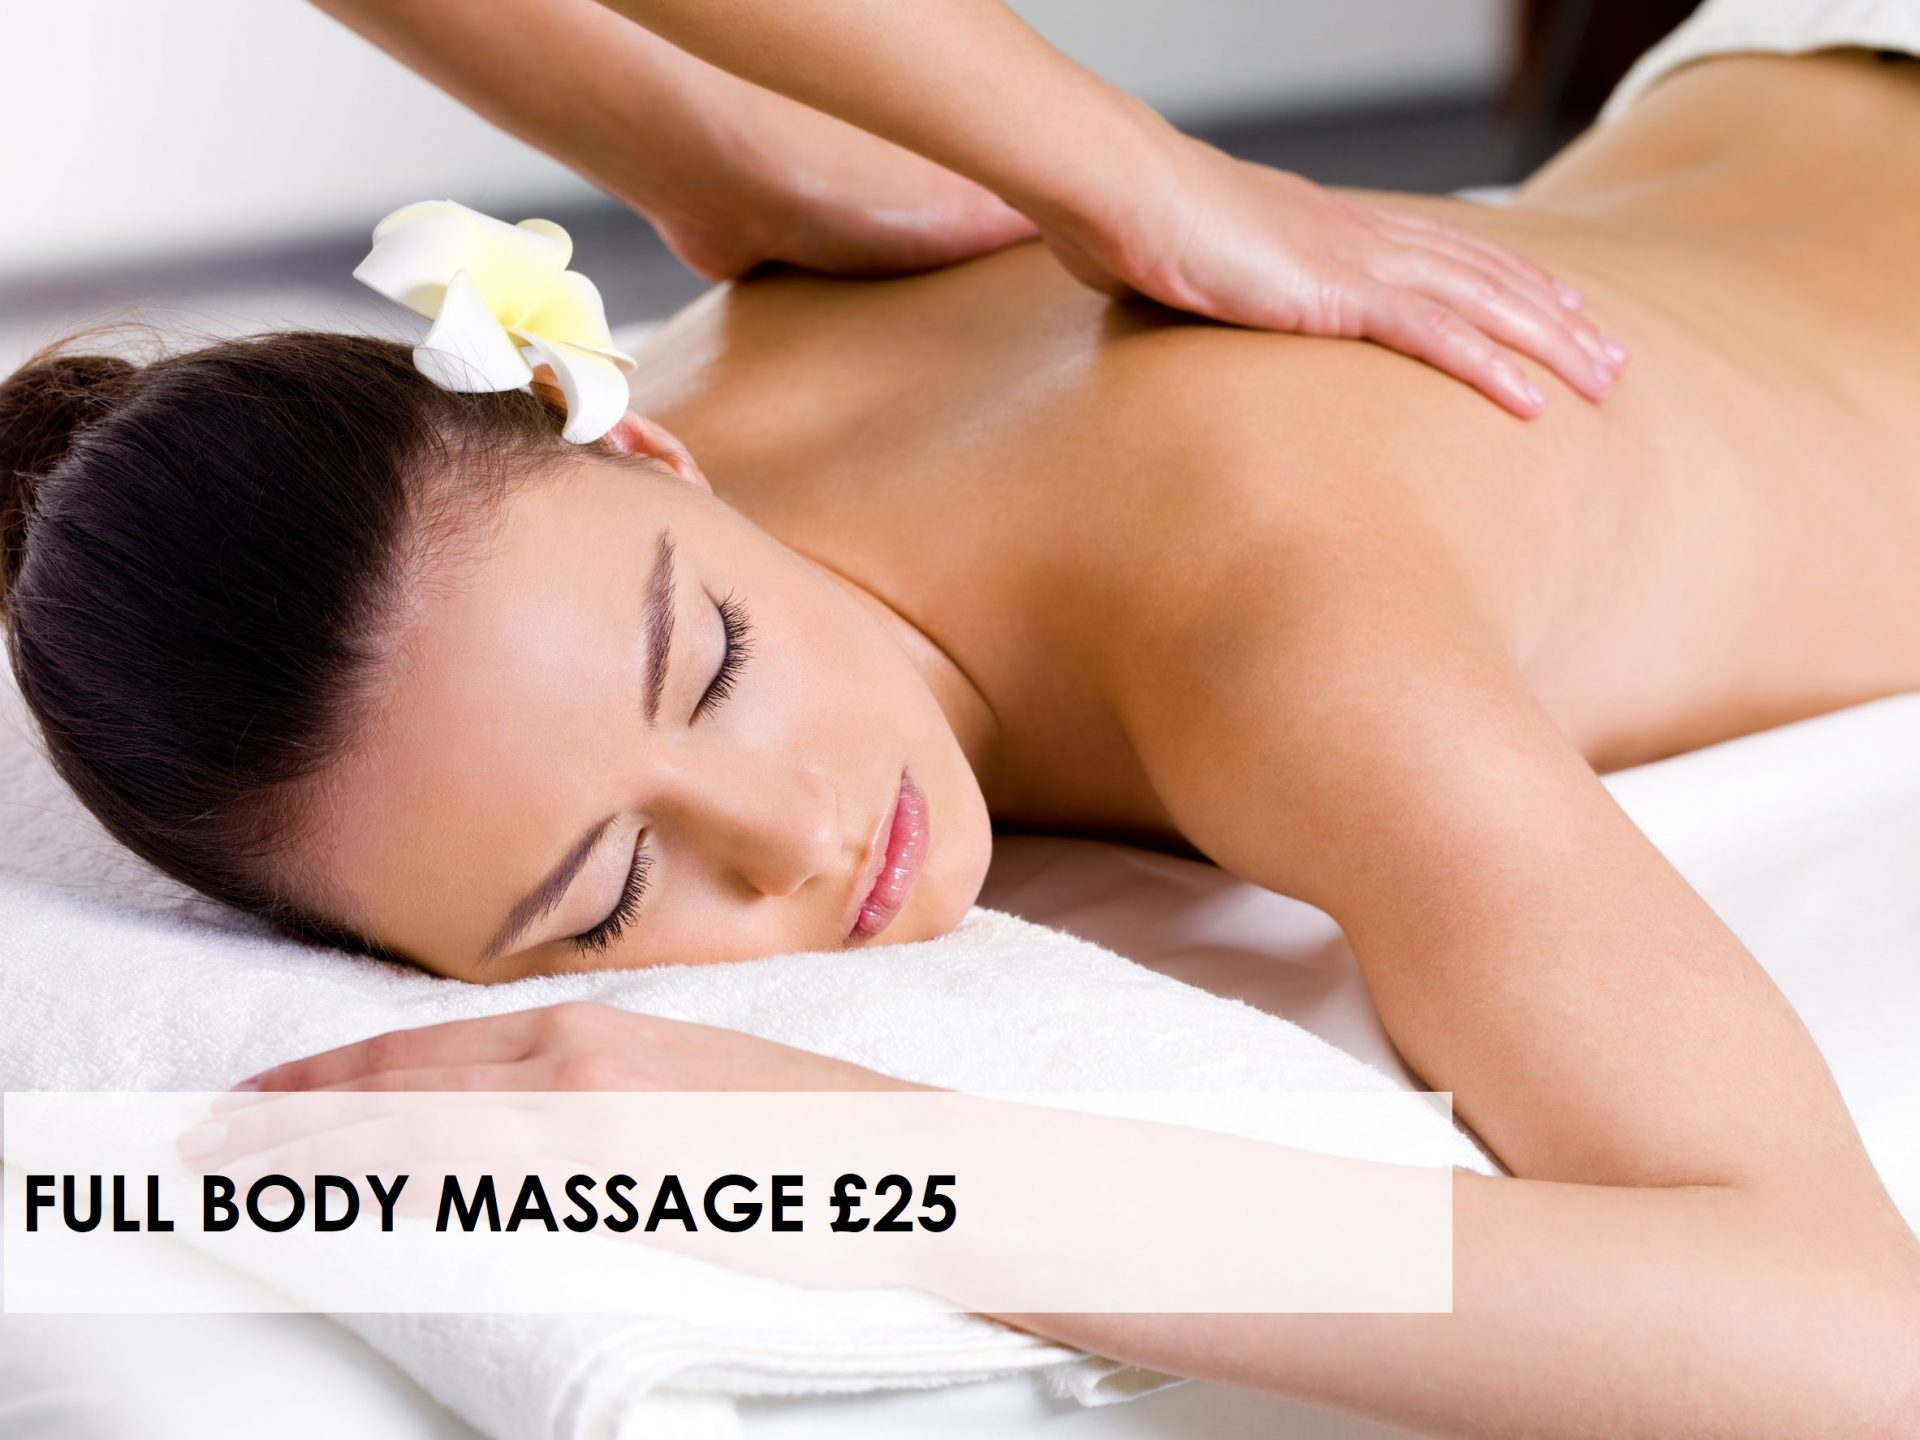 Where Can I Get Full Body Massage January Massage Offer At Award Winning Ipswich Beauty Salon